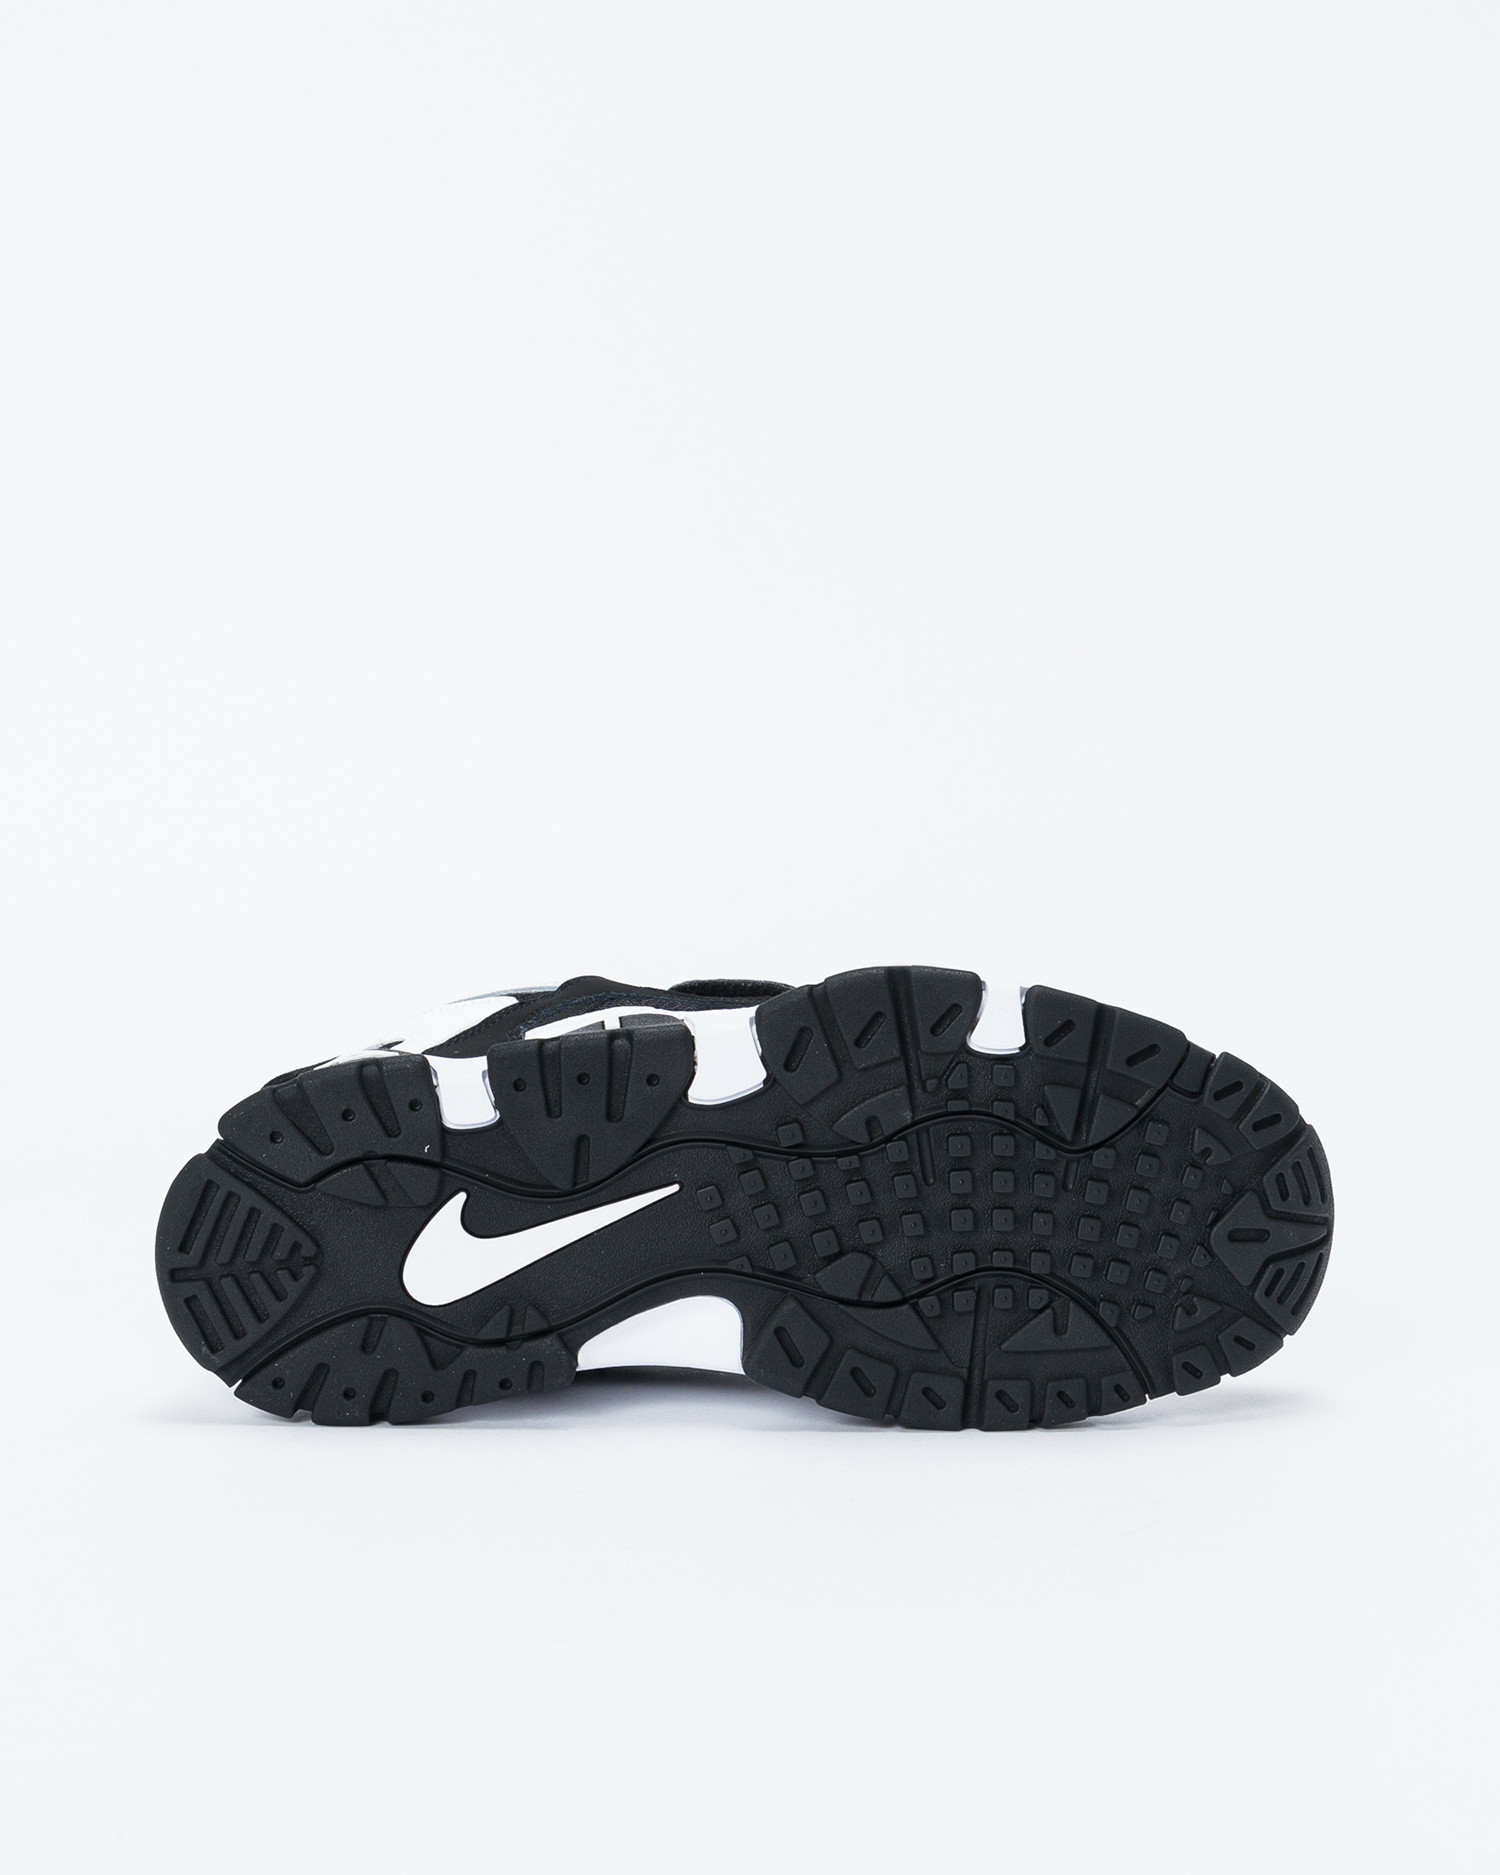 Nike Air Barage Mid Black/white-cabana